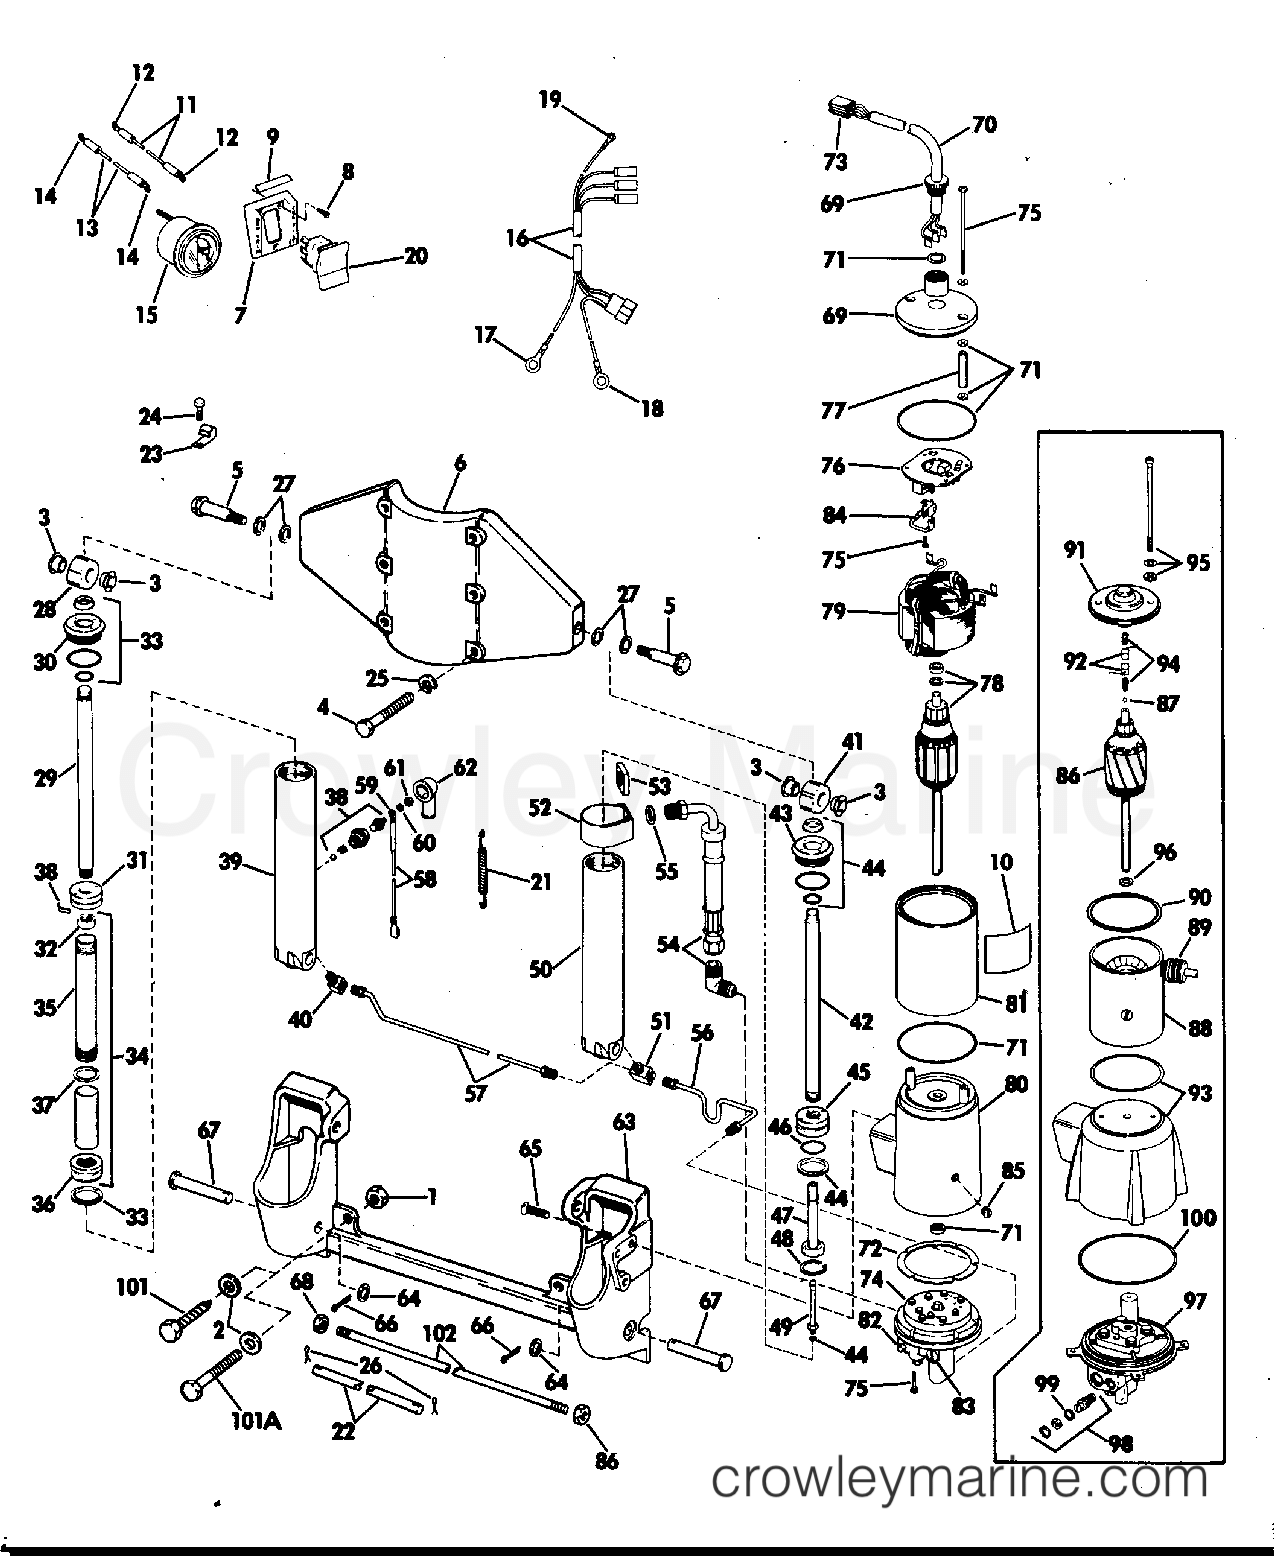 yamaha wiring diagram with 35741 on Saturn V Rocket Stages Diagram together with 5425 John Deere Wiring Diagram in addition 2002 Yamaha R6 Stator Wiring Diagram in addition 35741 additionally Wiring Diagram For John Deere 870 Tractor.